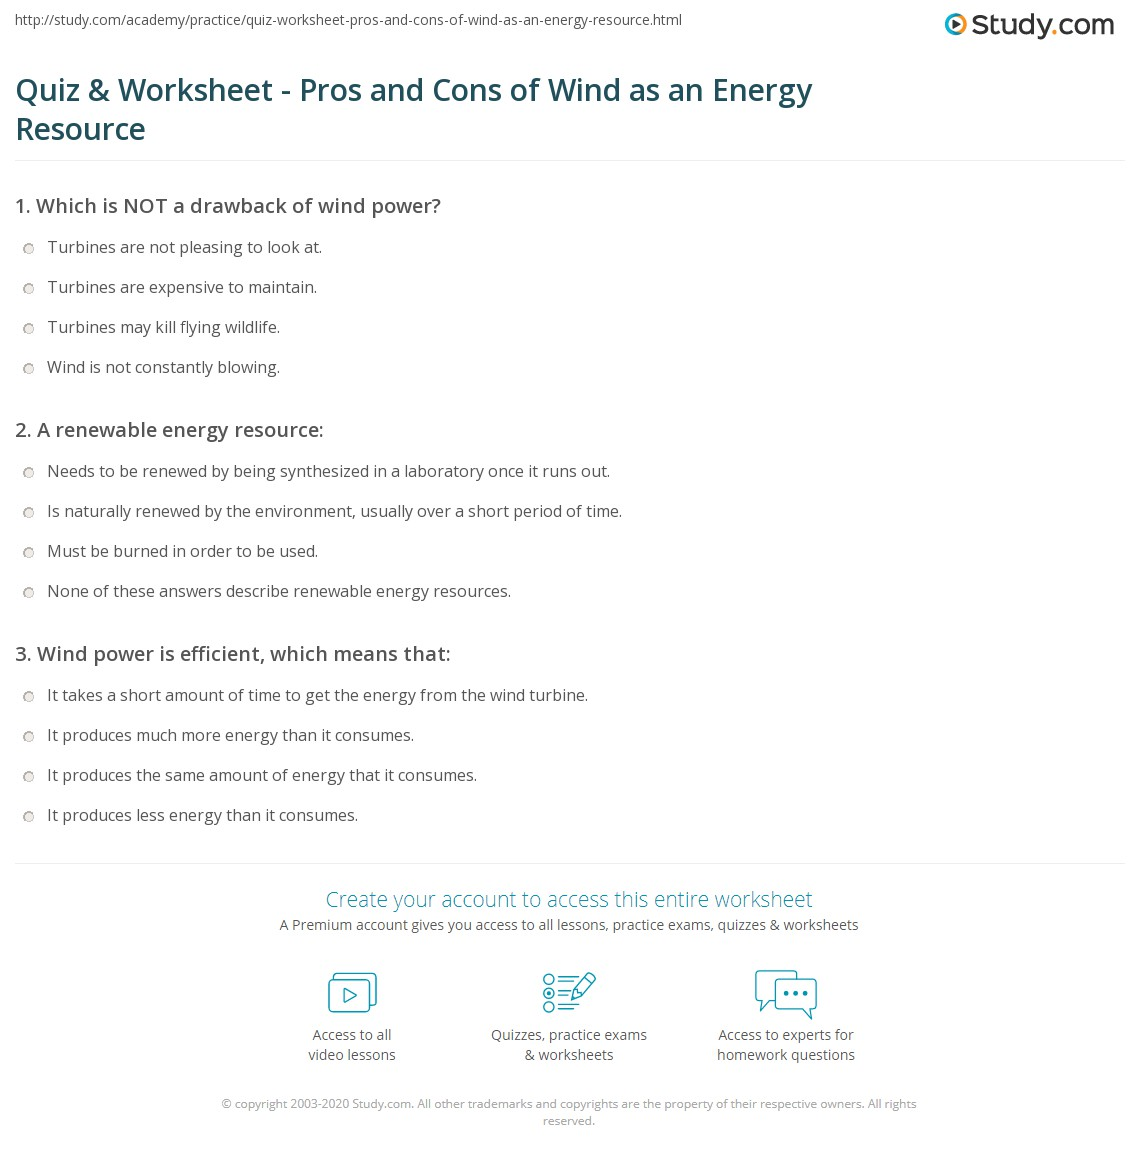 Quiz Worksheet Pros And Cons Of Wind As An Energy